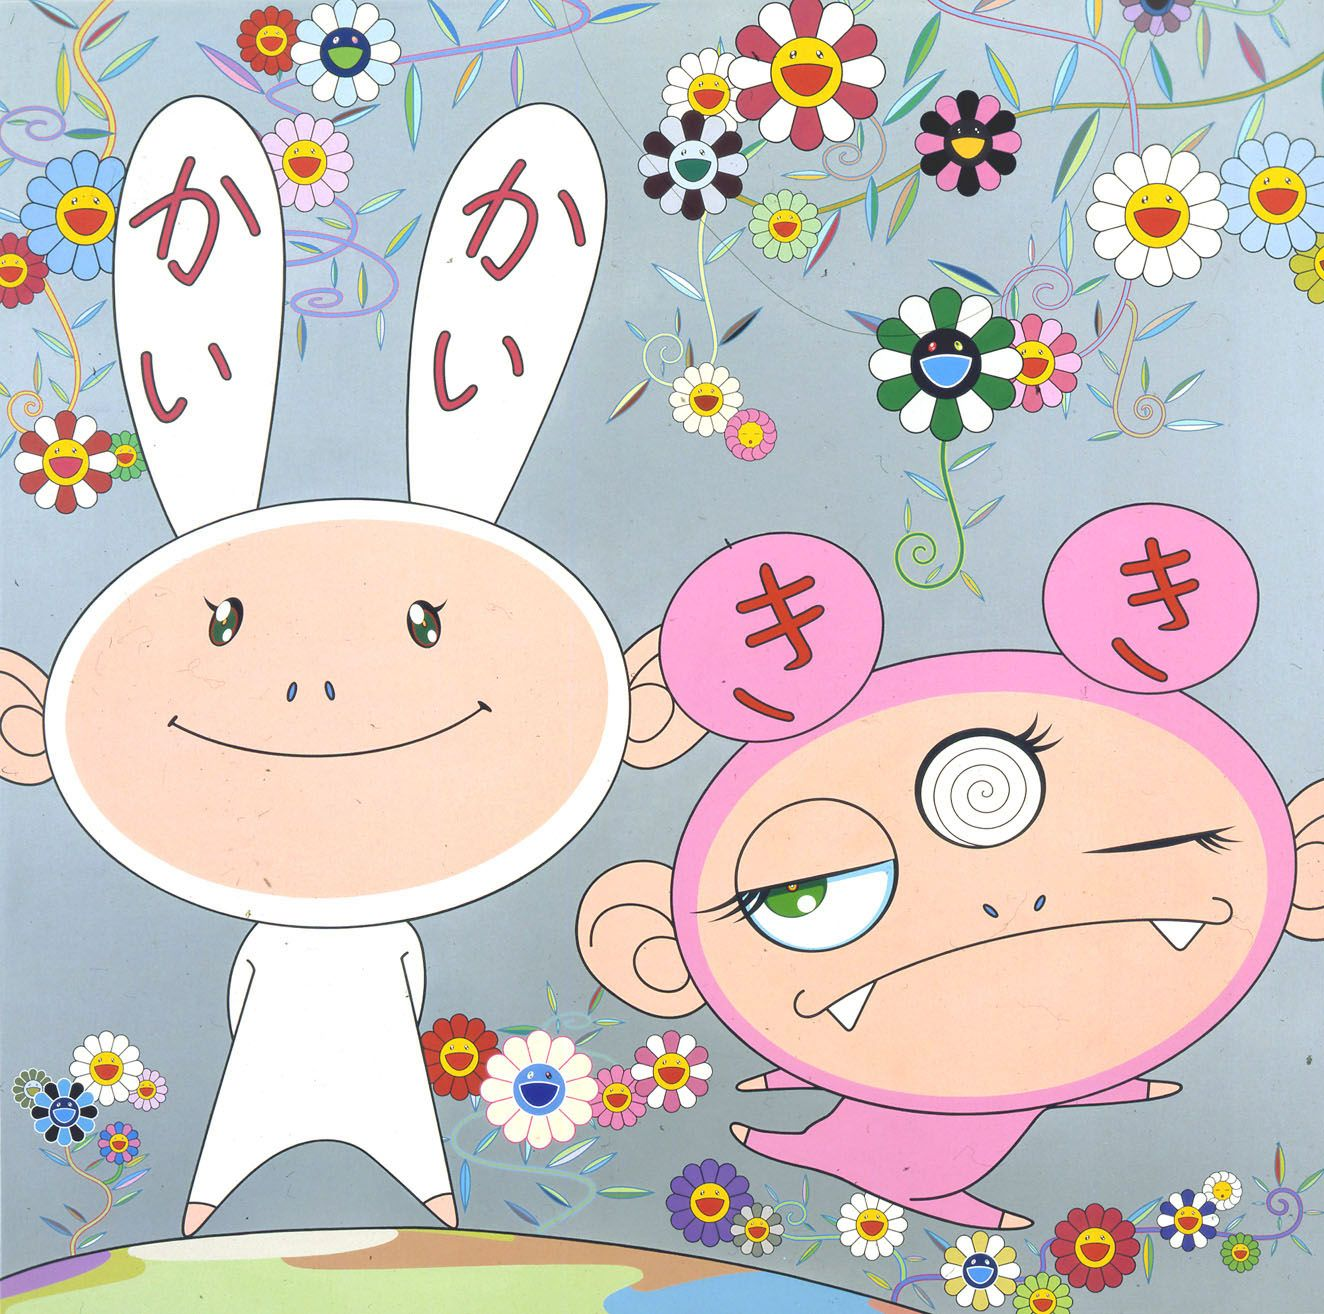 two figures with bunny ears by takashi murakami